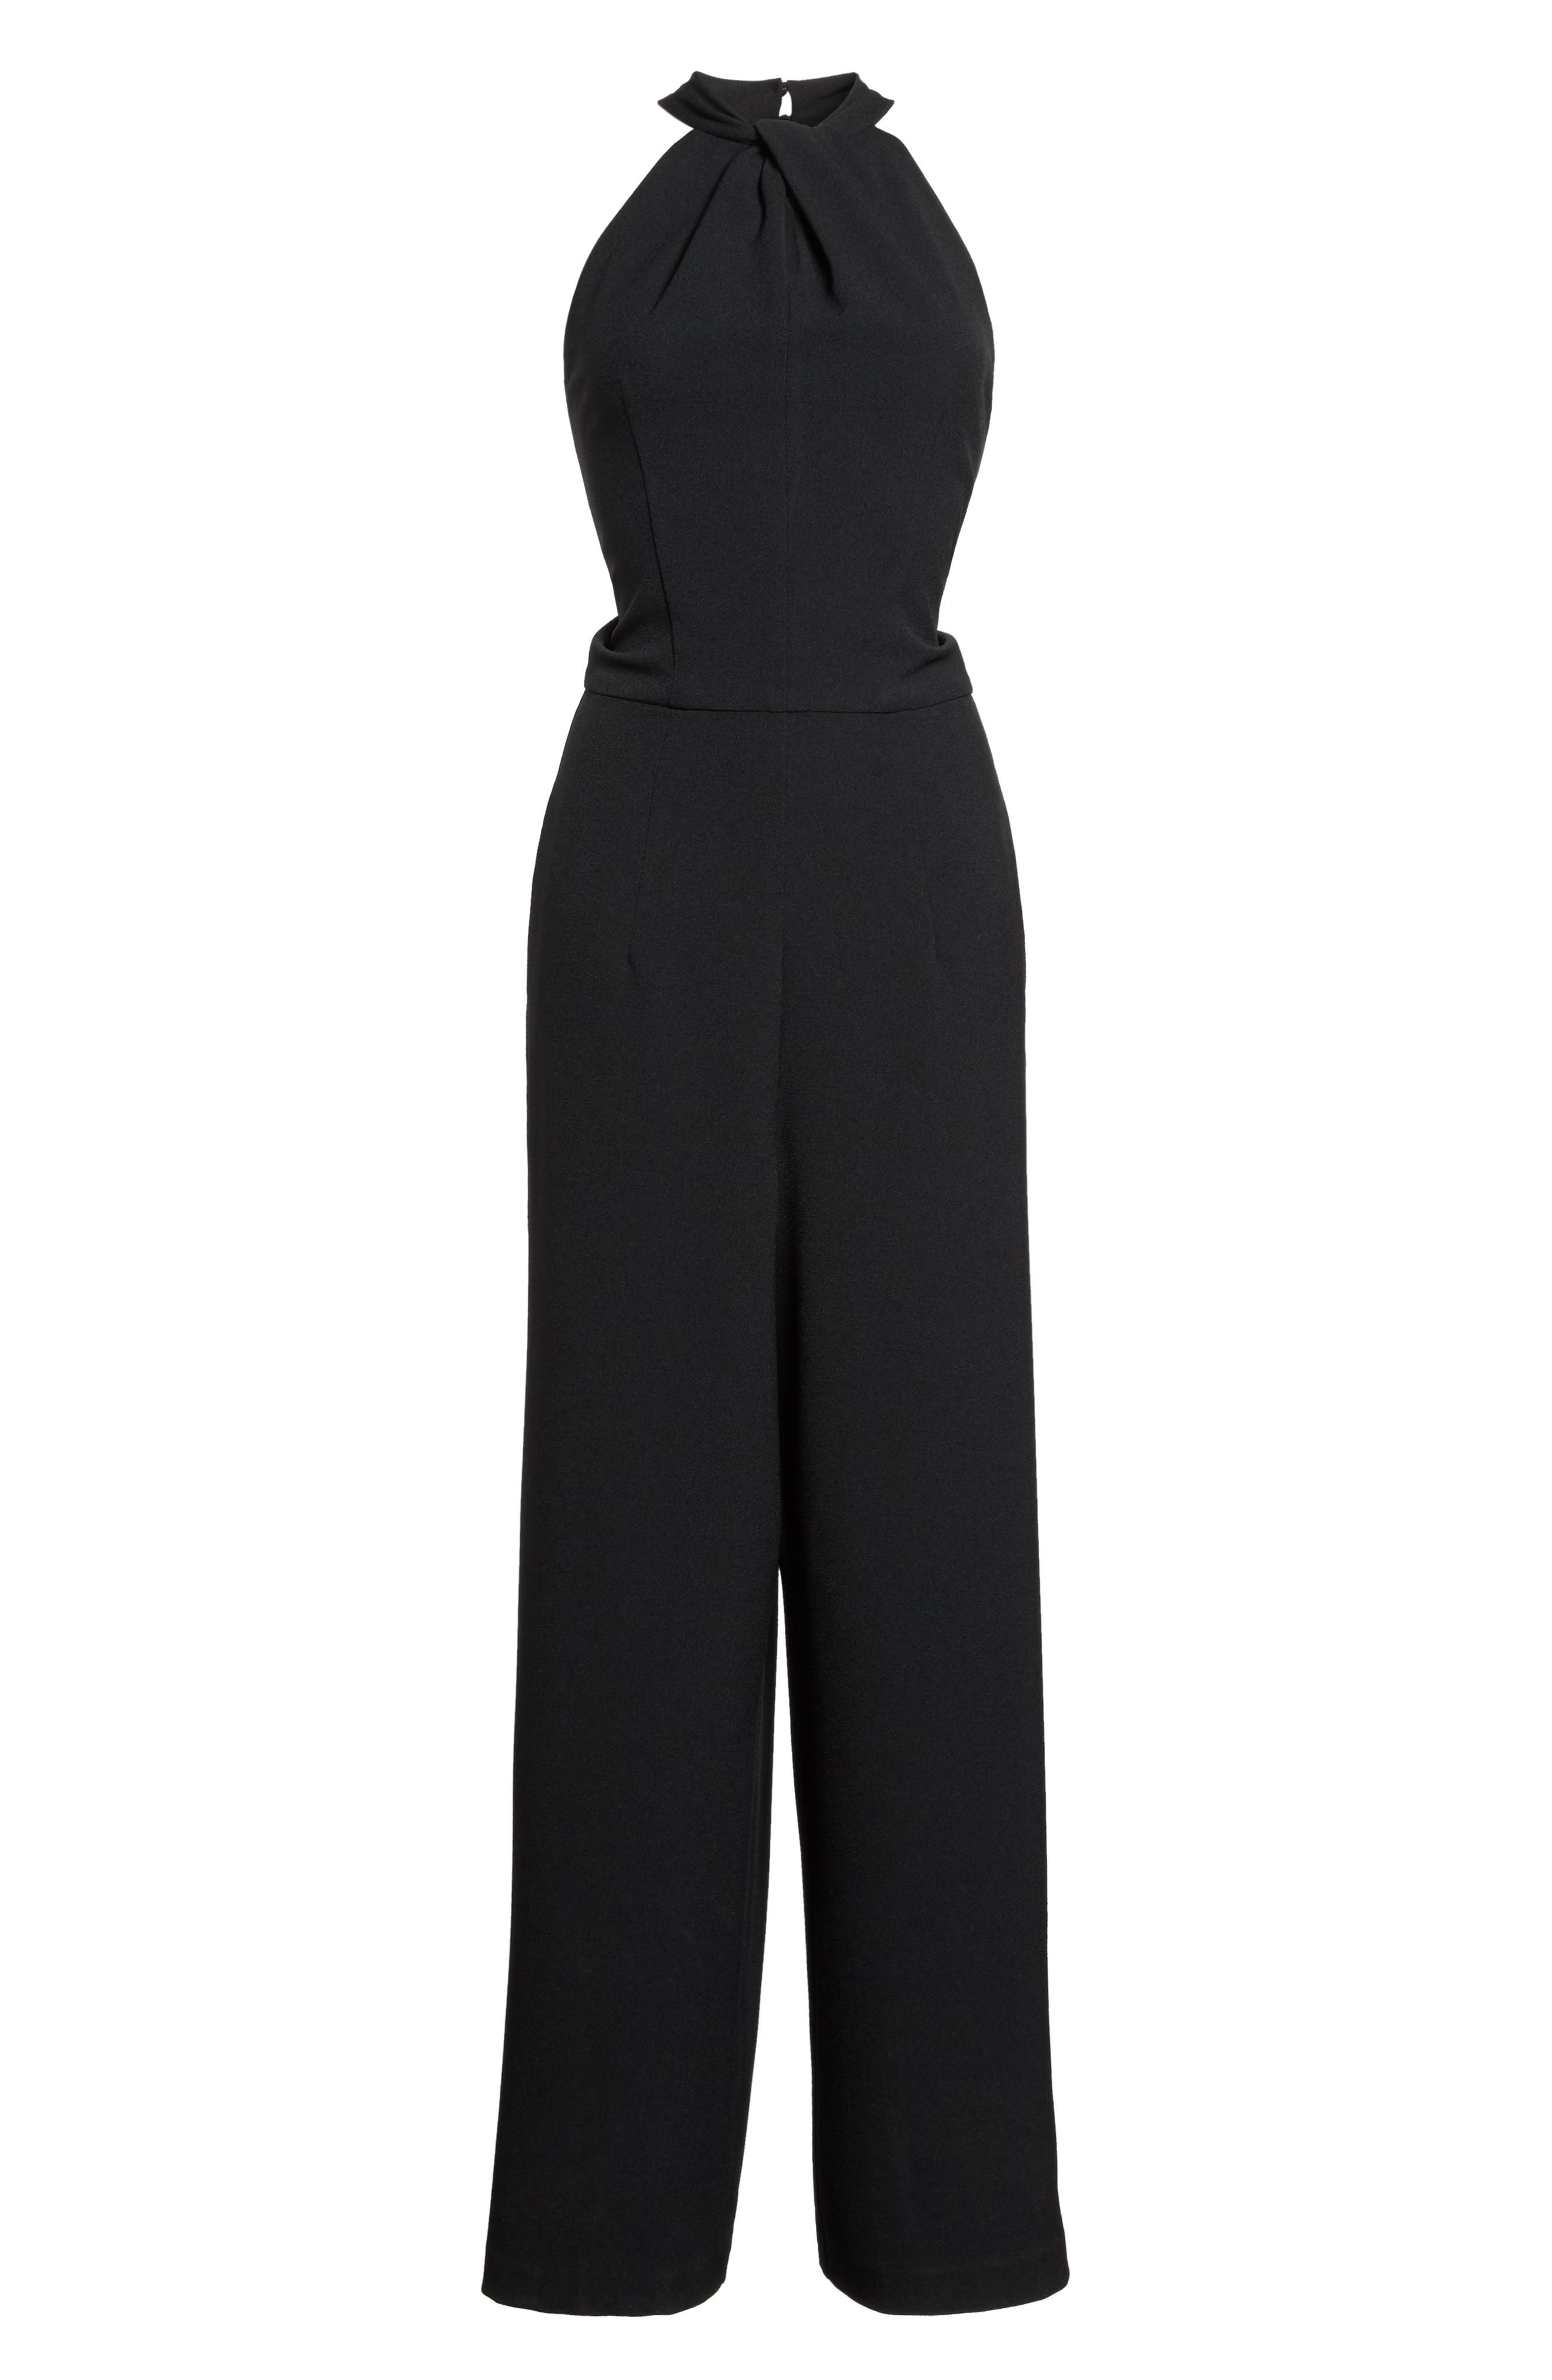 Halter Neck Jumpsuit,                             Alternate thumbnail 6, color,                             Black